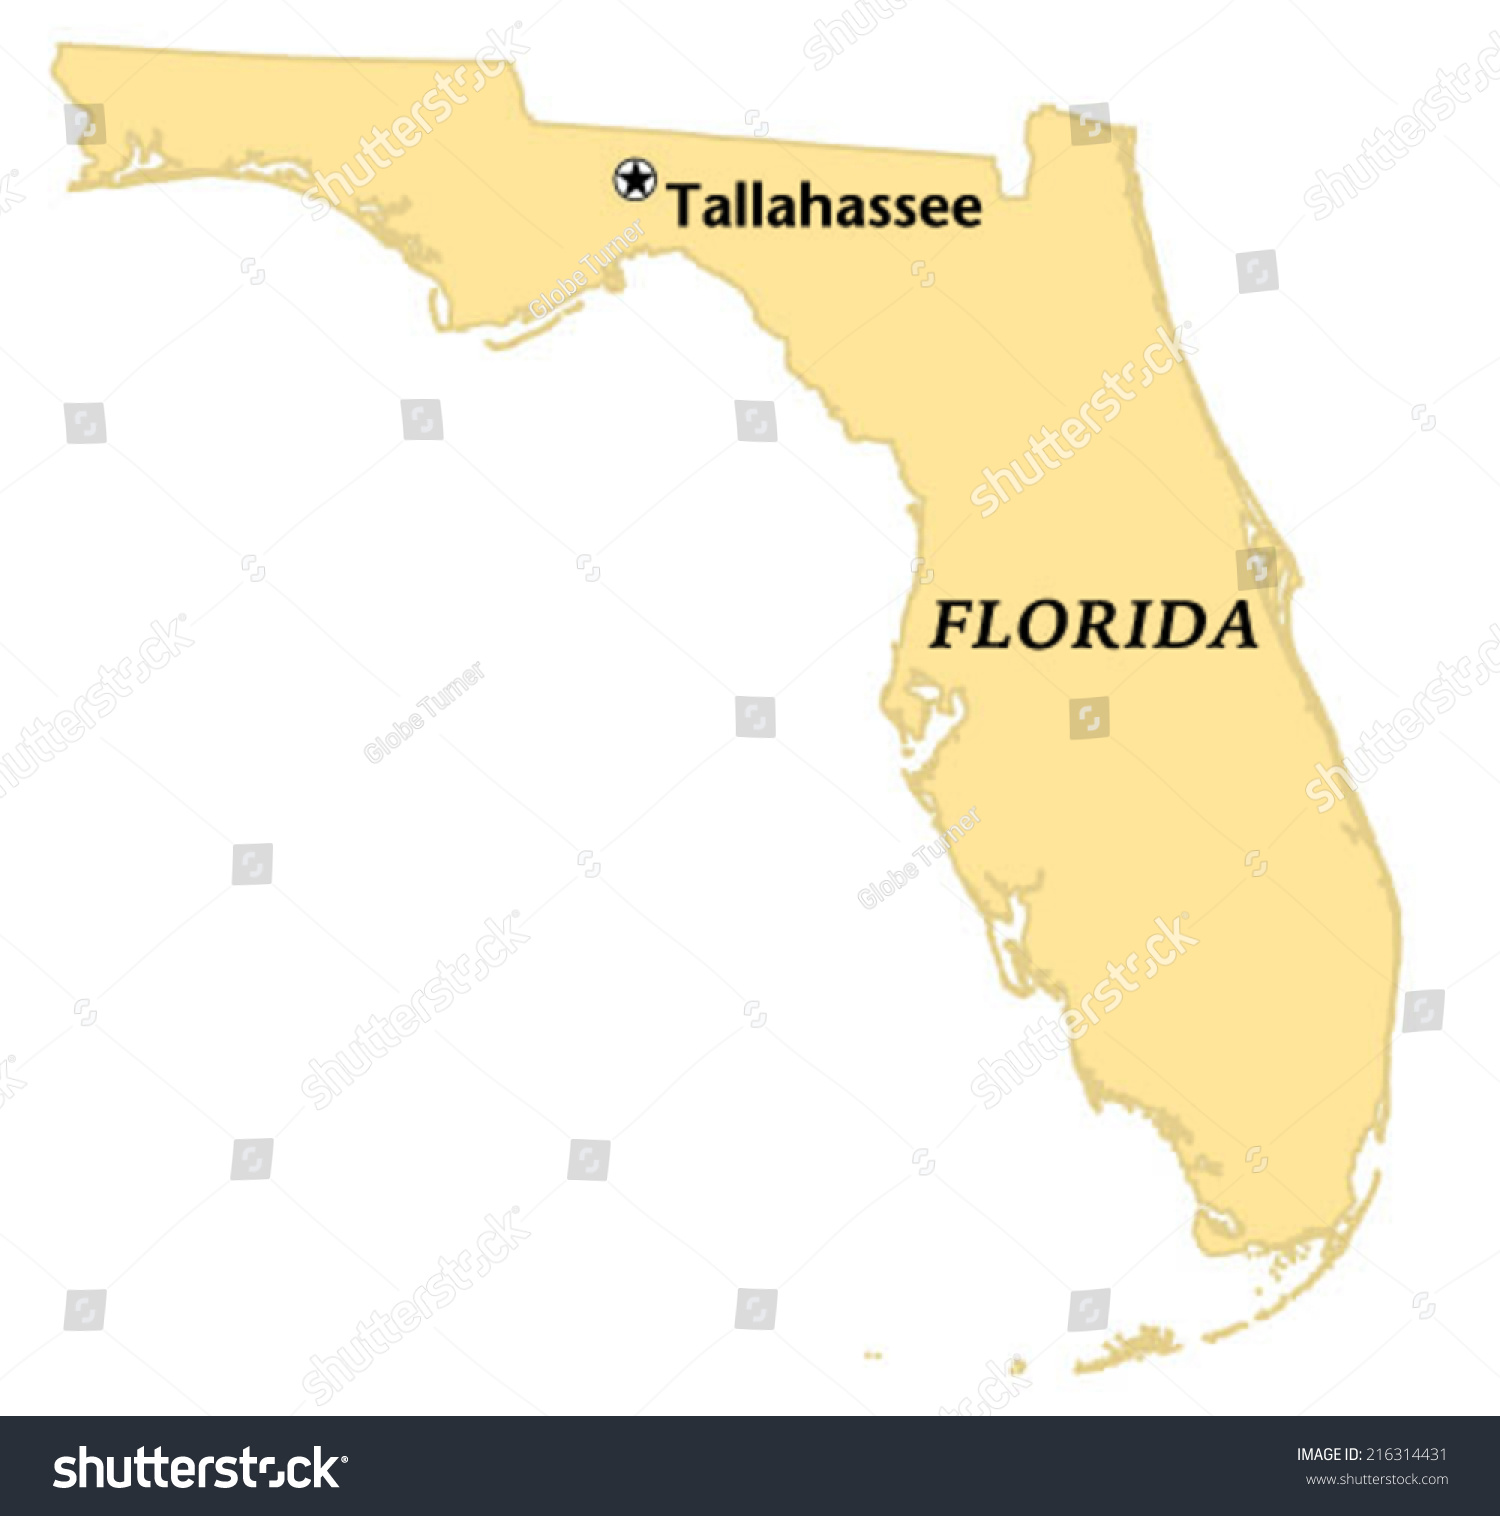 Tallahassee Florida Map.Tallahassee Florida Locate Map Stock Vector Royalty Free 216314431